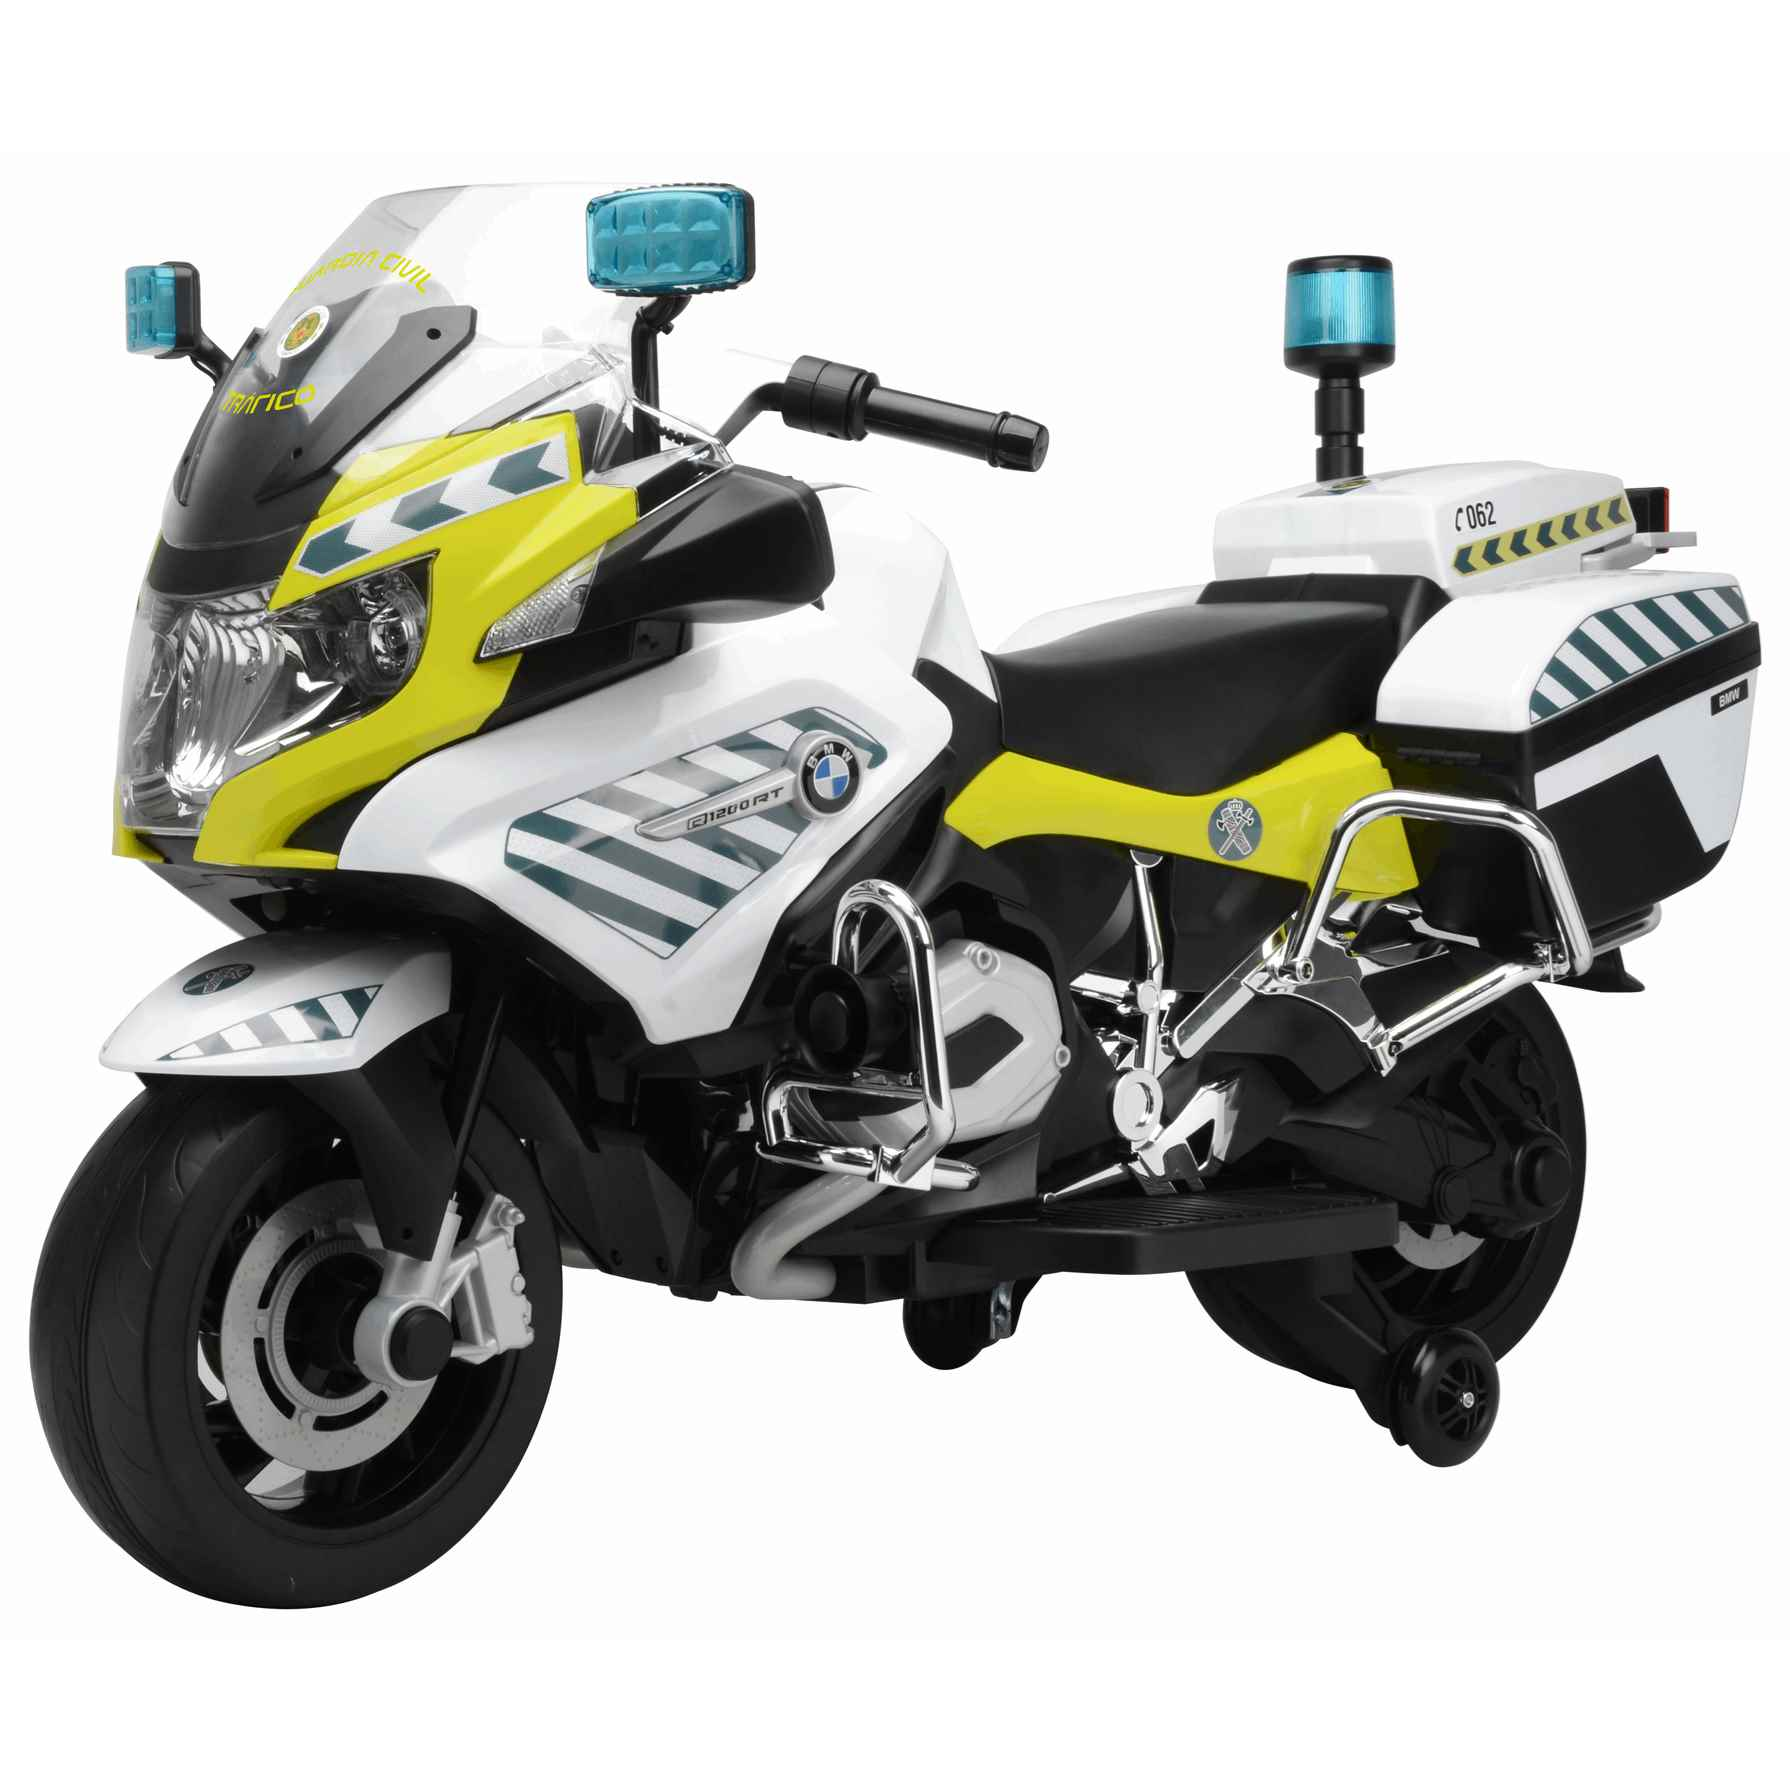 Moto BMW de Guardia Civil 12V